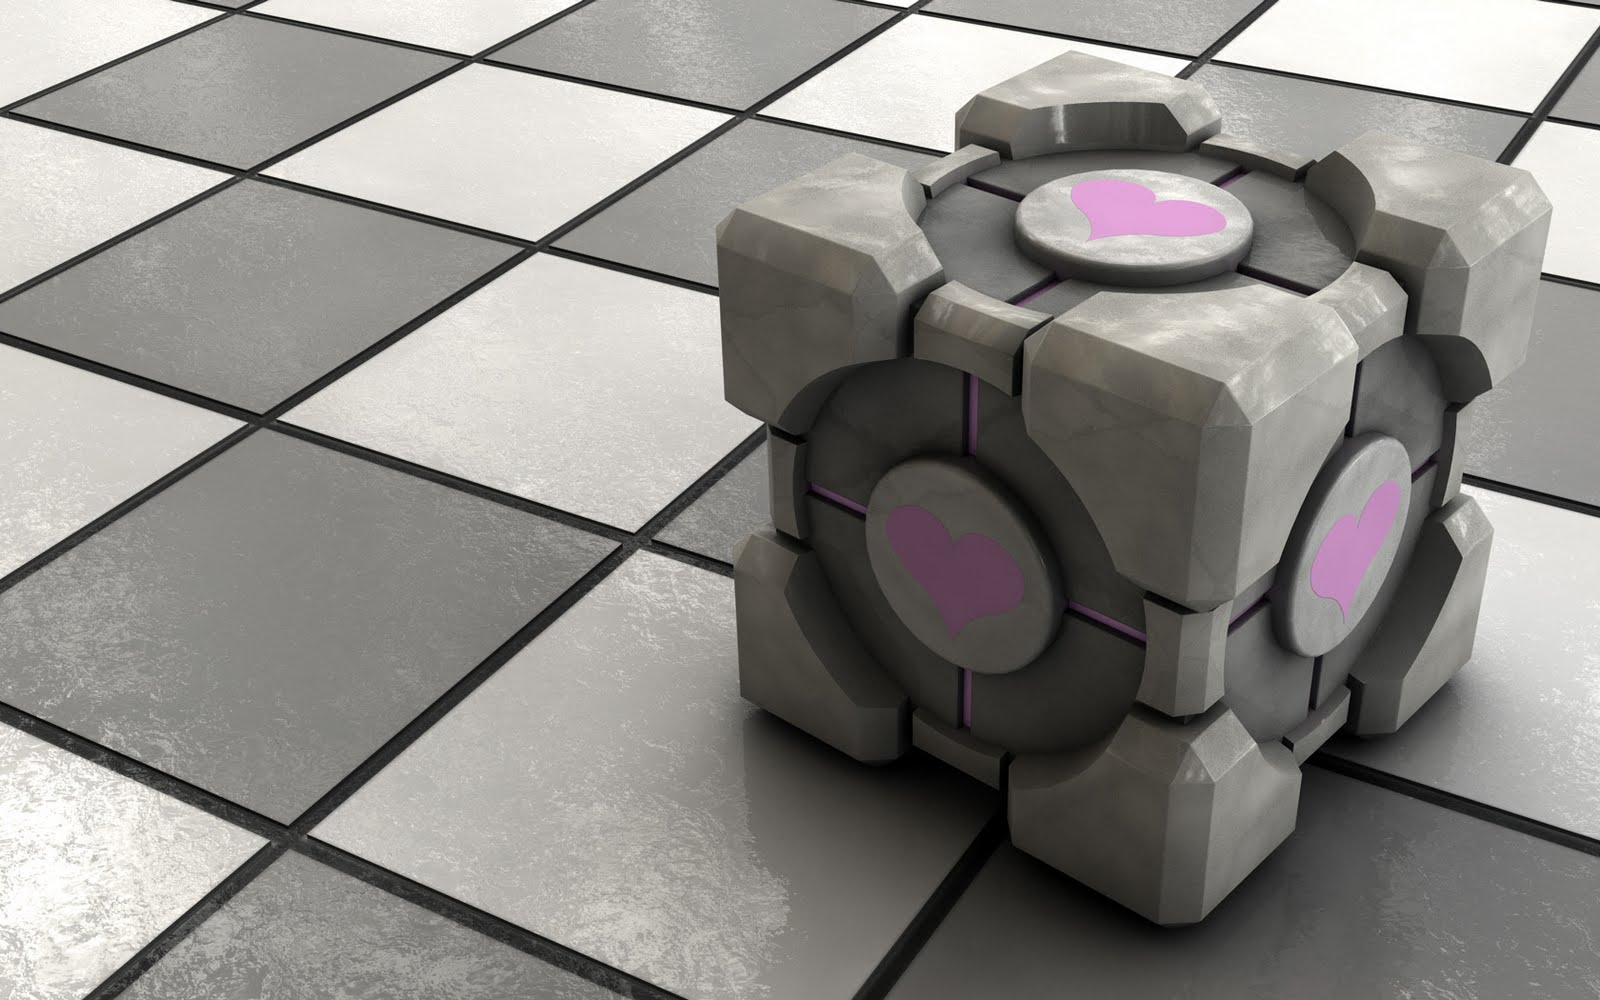 https://2.bp.blogspot.com/_HzAThb2RgMc/TLxiDw2g_dI/AAAAAAAABoc/gL3CNIteYW0/s1600/Weighted_Companion_Cube_by_Matarsak.jpg